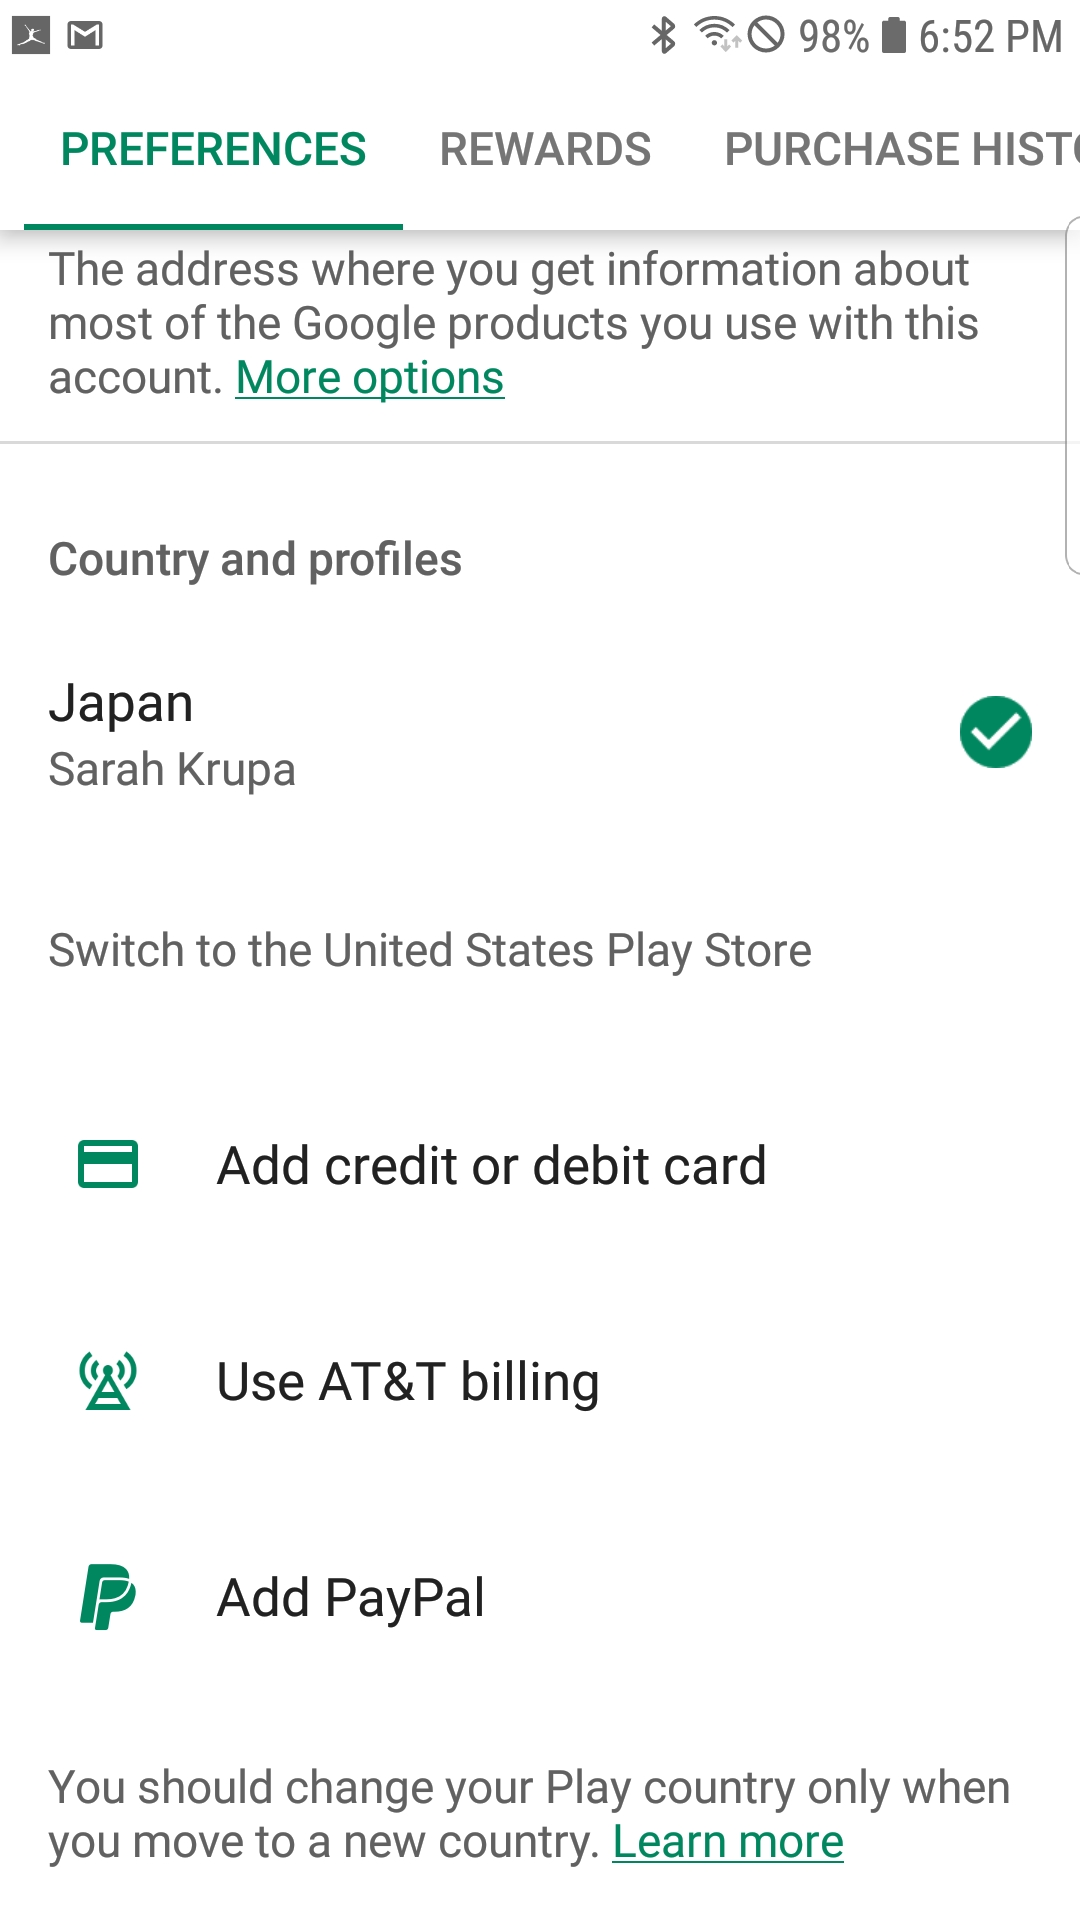 Switch to the United States grayed out after